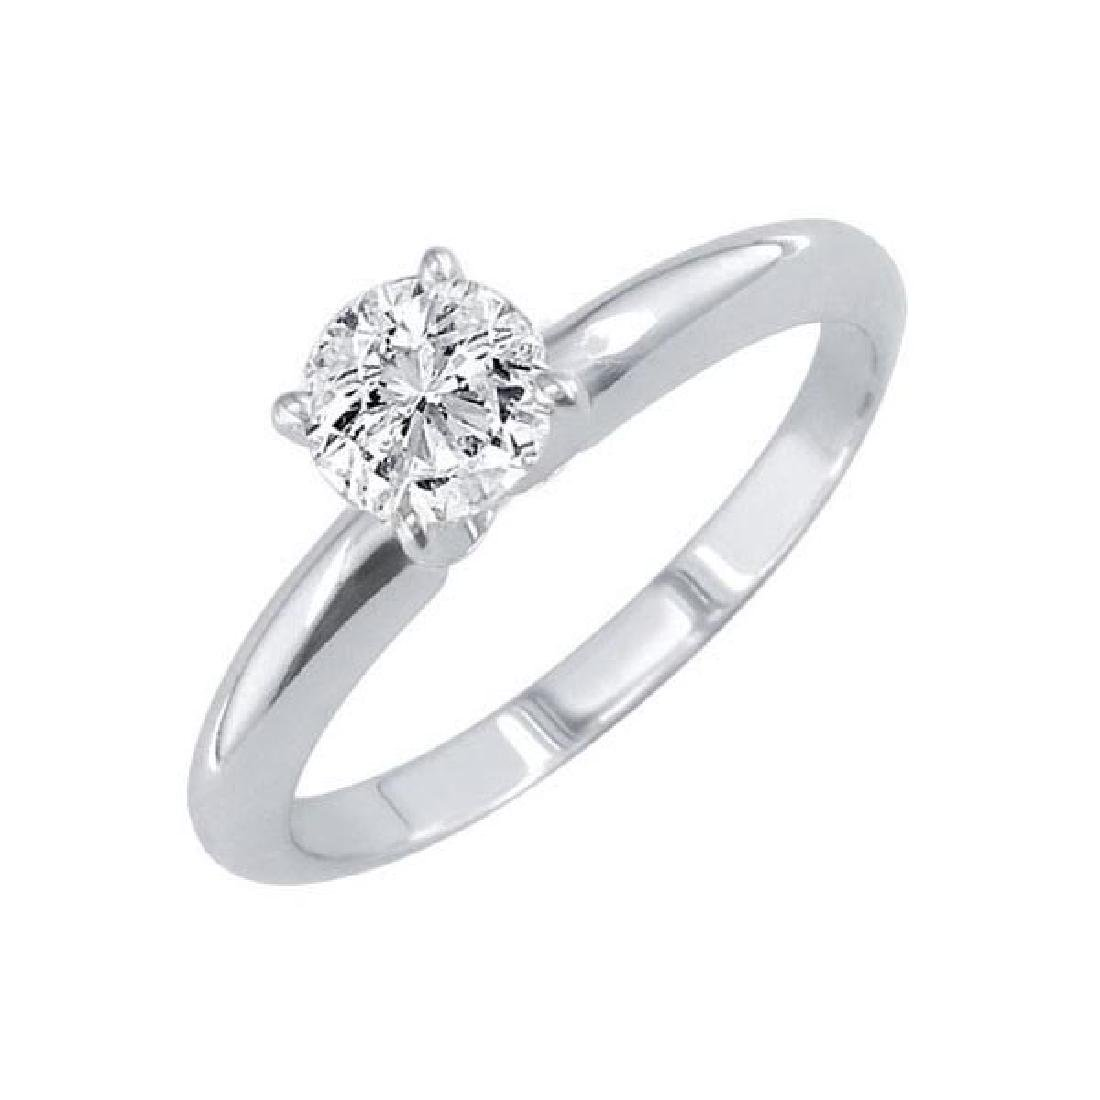 Certified 1.4 CTW Round Diamond Solitaire 14k Ring J/SI